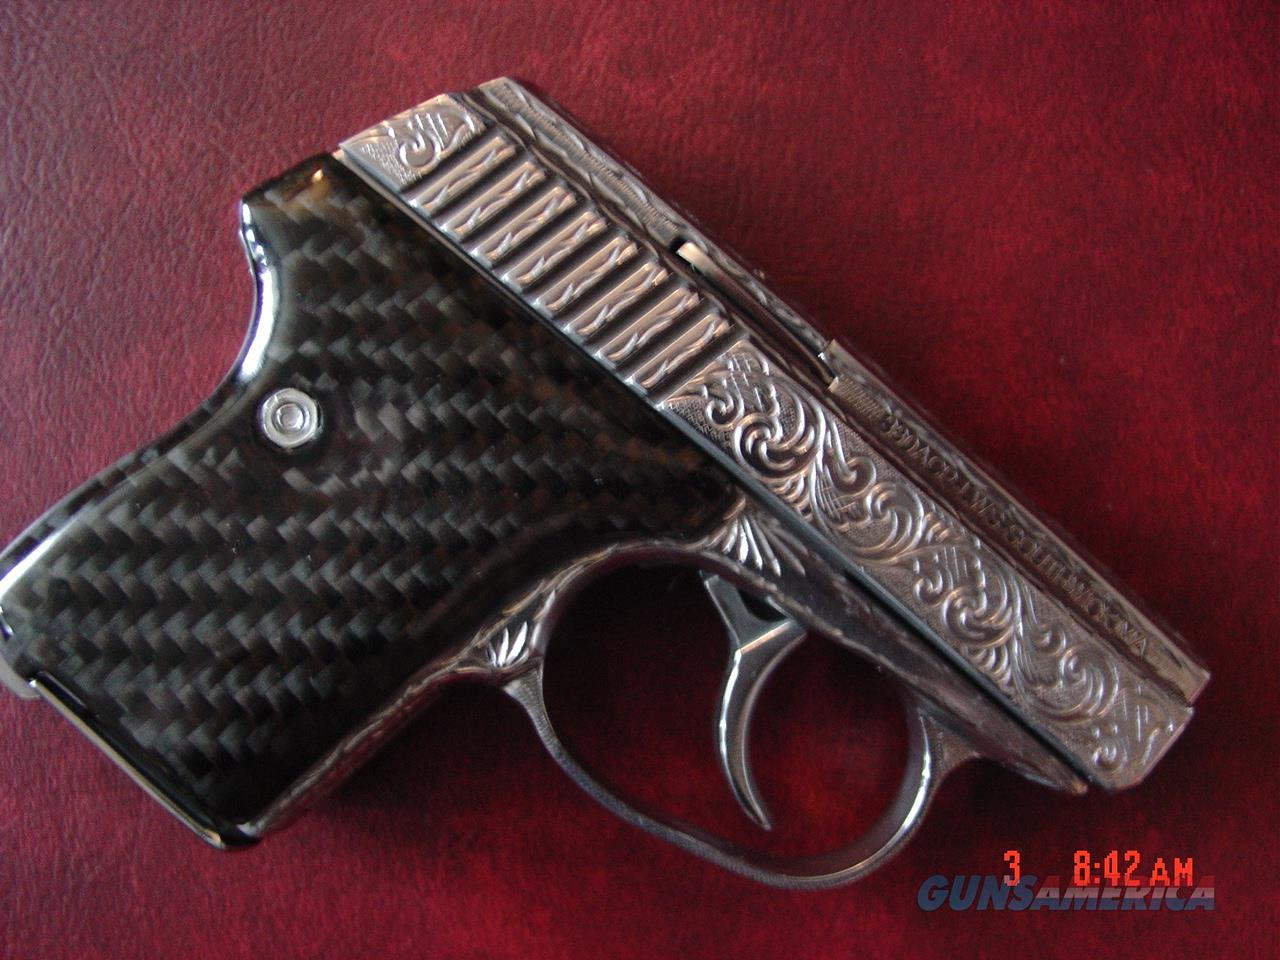 Seecamp LWS 380, fully engraved & polished by Flannery Engraving,Carbon  Fiber grips,box,manual,& certificate  1 of a kind work of art !!